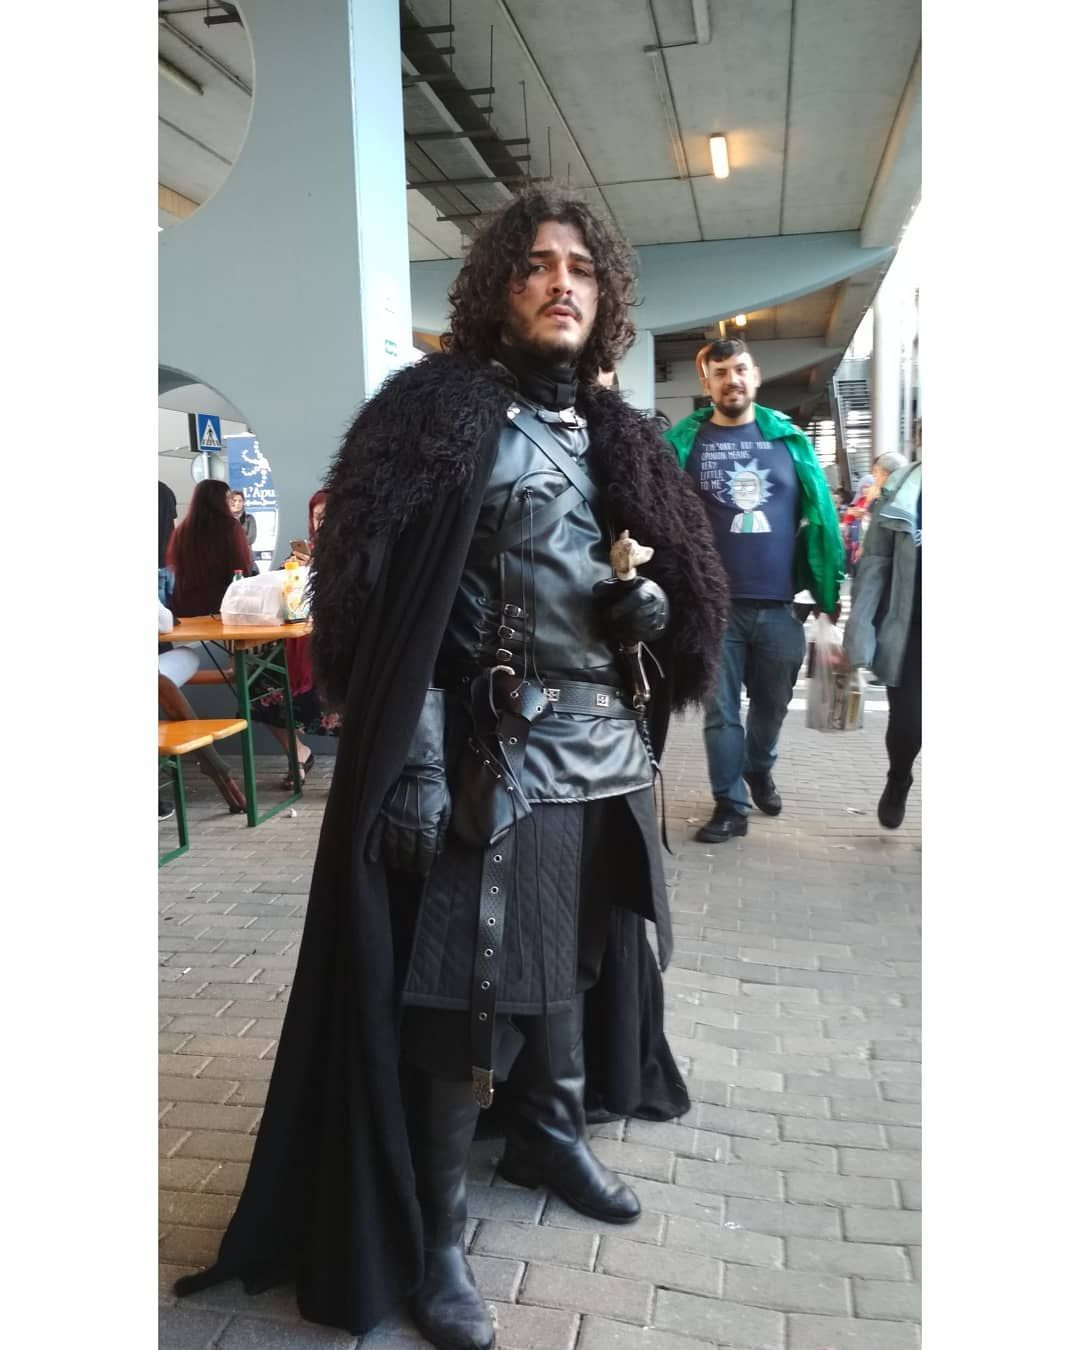 Game Of Thrones Jon Snow Anleitungen Für Kreative Kostüme Game